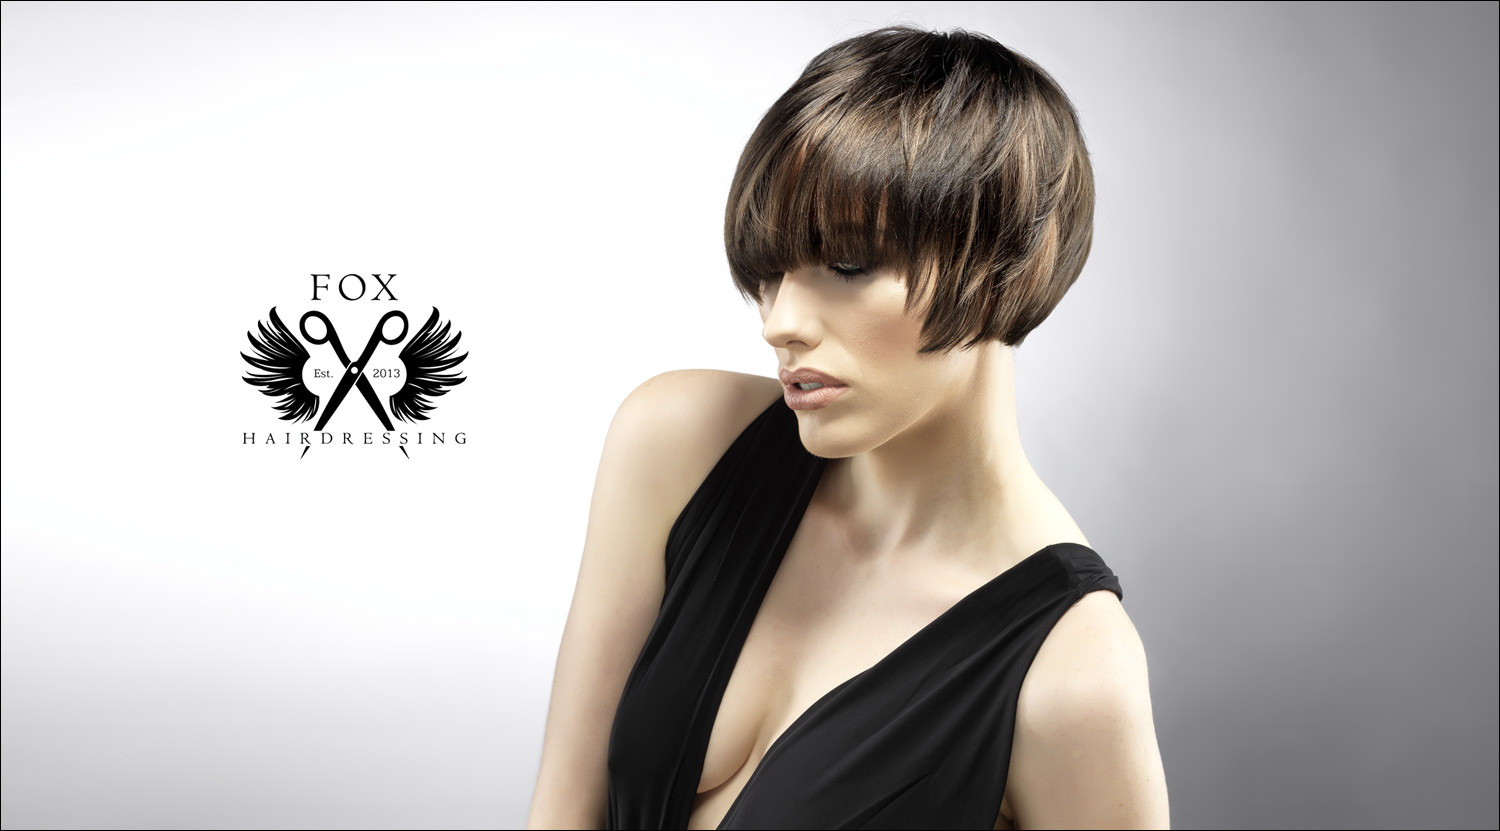 hair photographer Matthew Seed shot this range of images for a hair salon to enter the London hair awards.